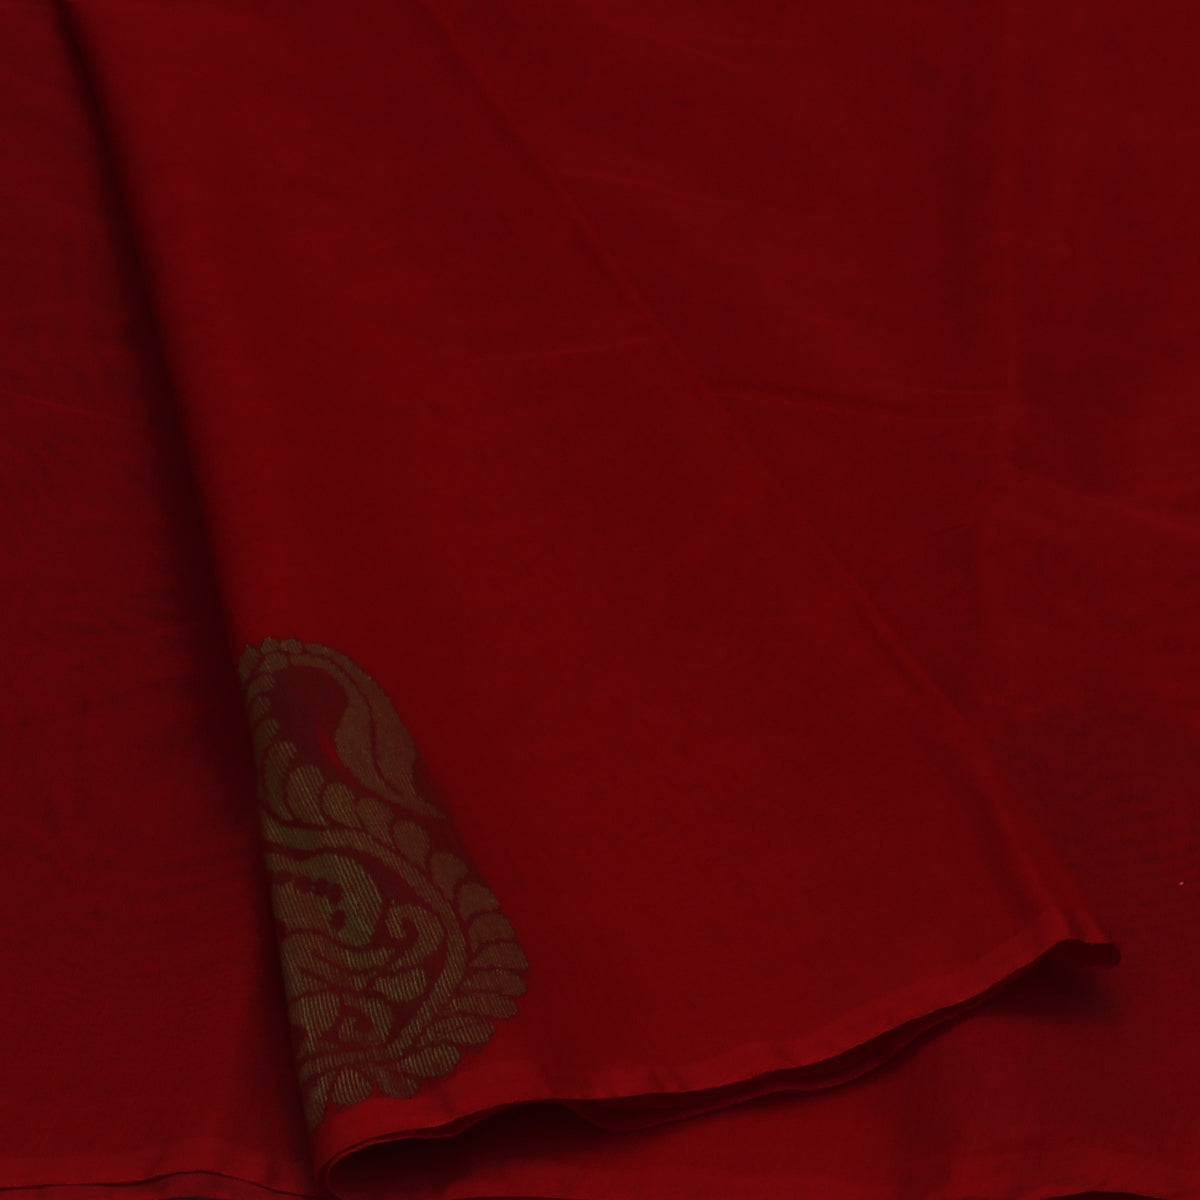 c115e1a542 Buy Kora Silk Saree Red and Green with Simple Border at Prashanti Sarees  for only Rs. 1,925.00